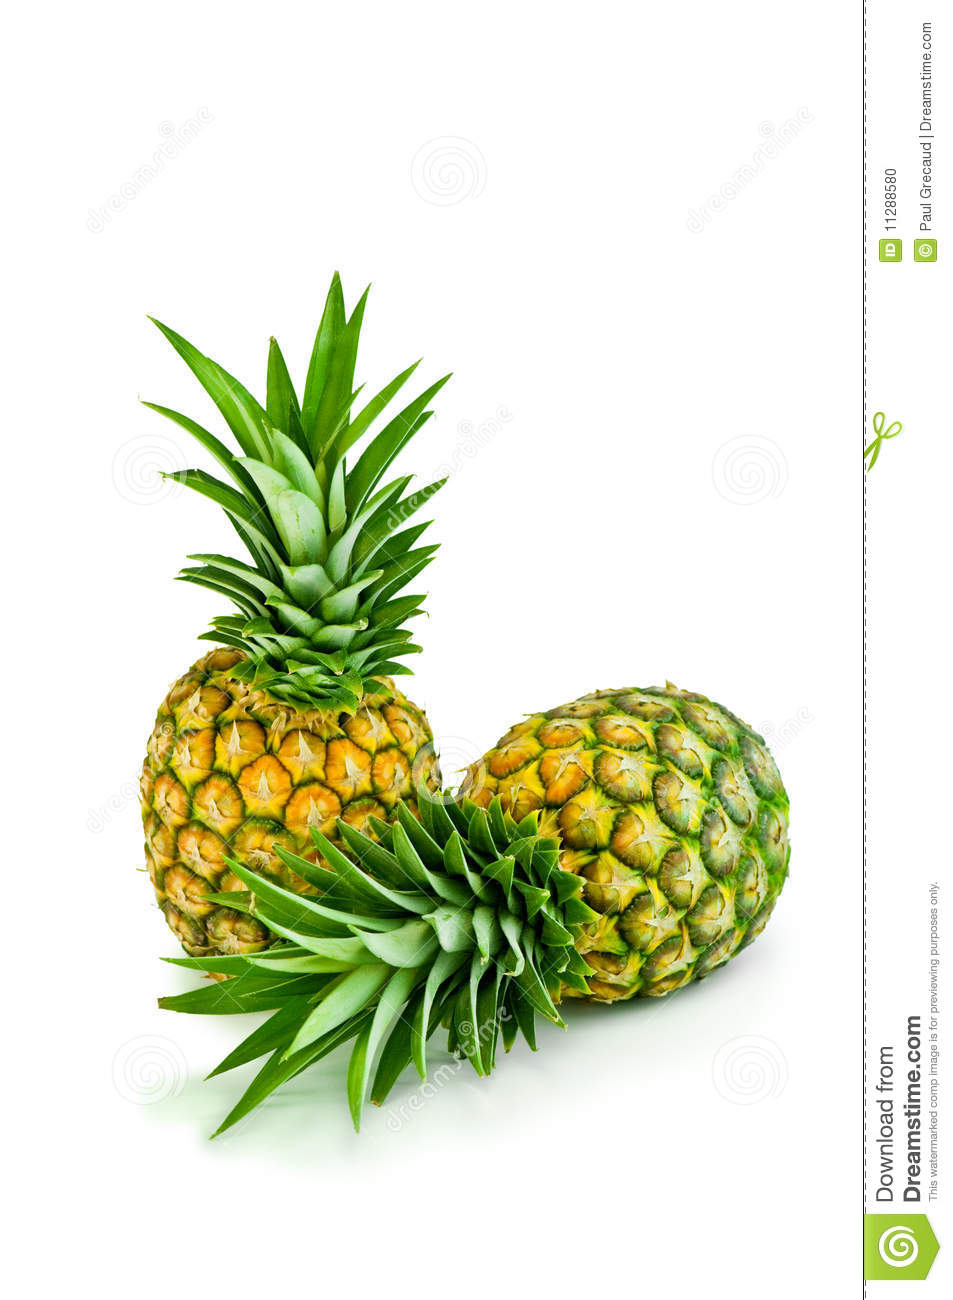 Two pineapples with fresh green leaves isolated on white background.: dreamstime.com/stock-photo-two-pineapples-image11288580